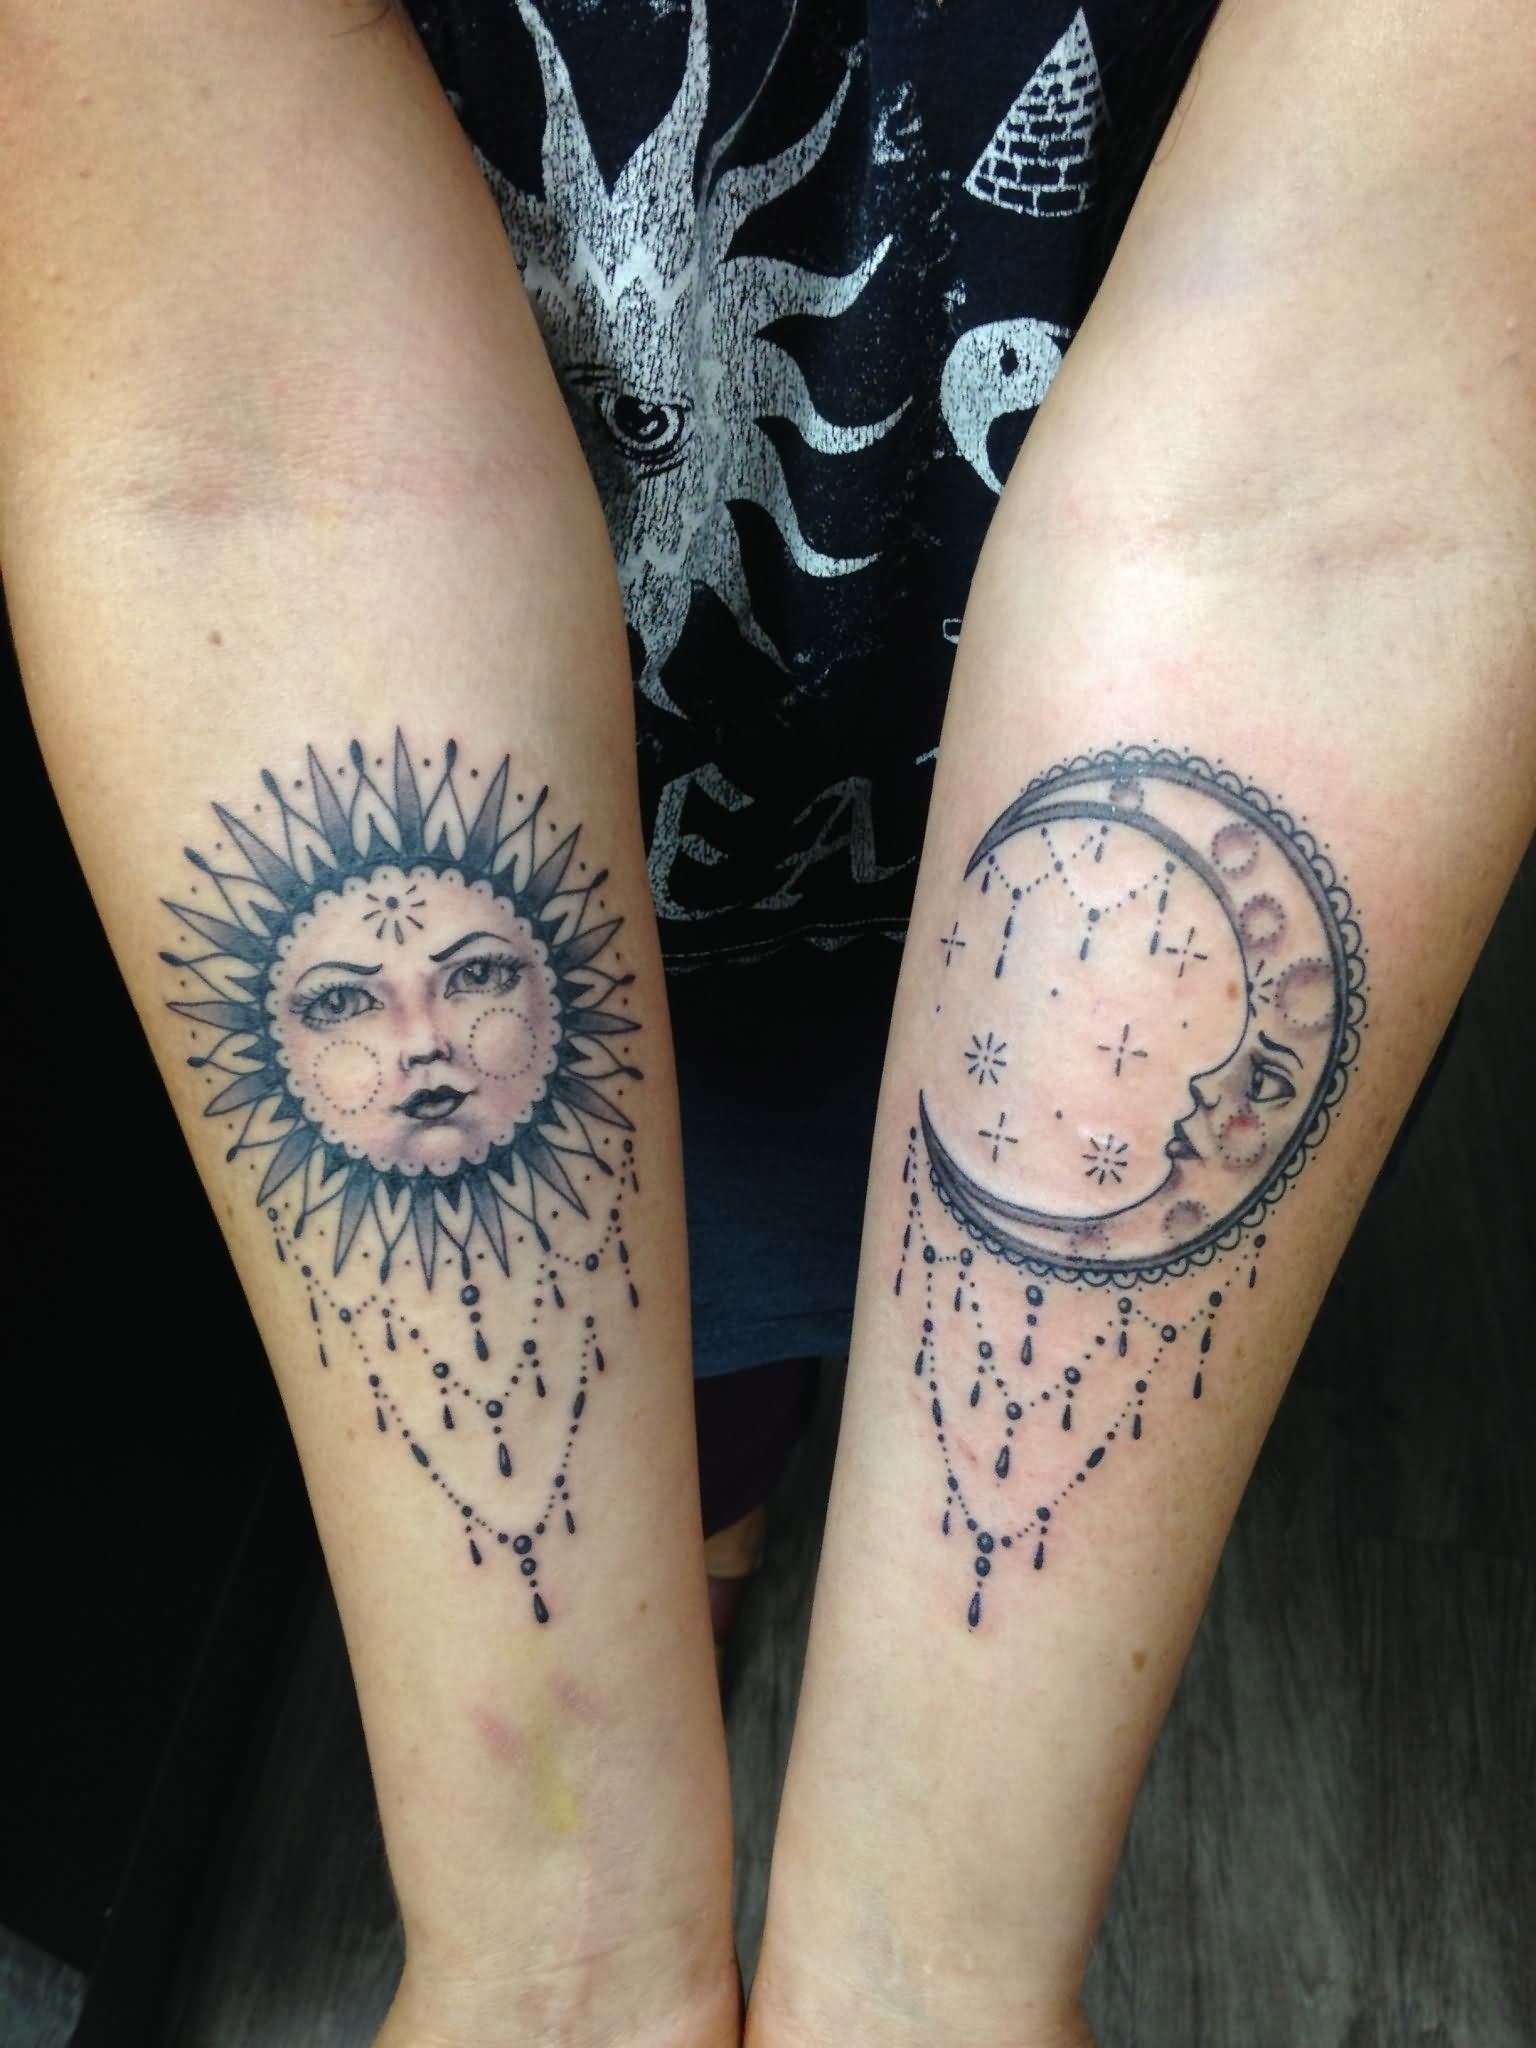 10 Awesome Sun And Moon Tattoo Ideas unique dotwork sun and half moon tattoo on both forearm 2020